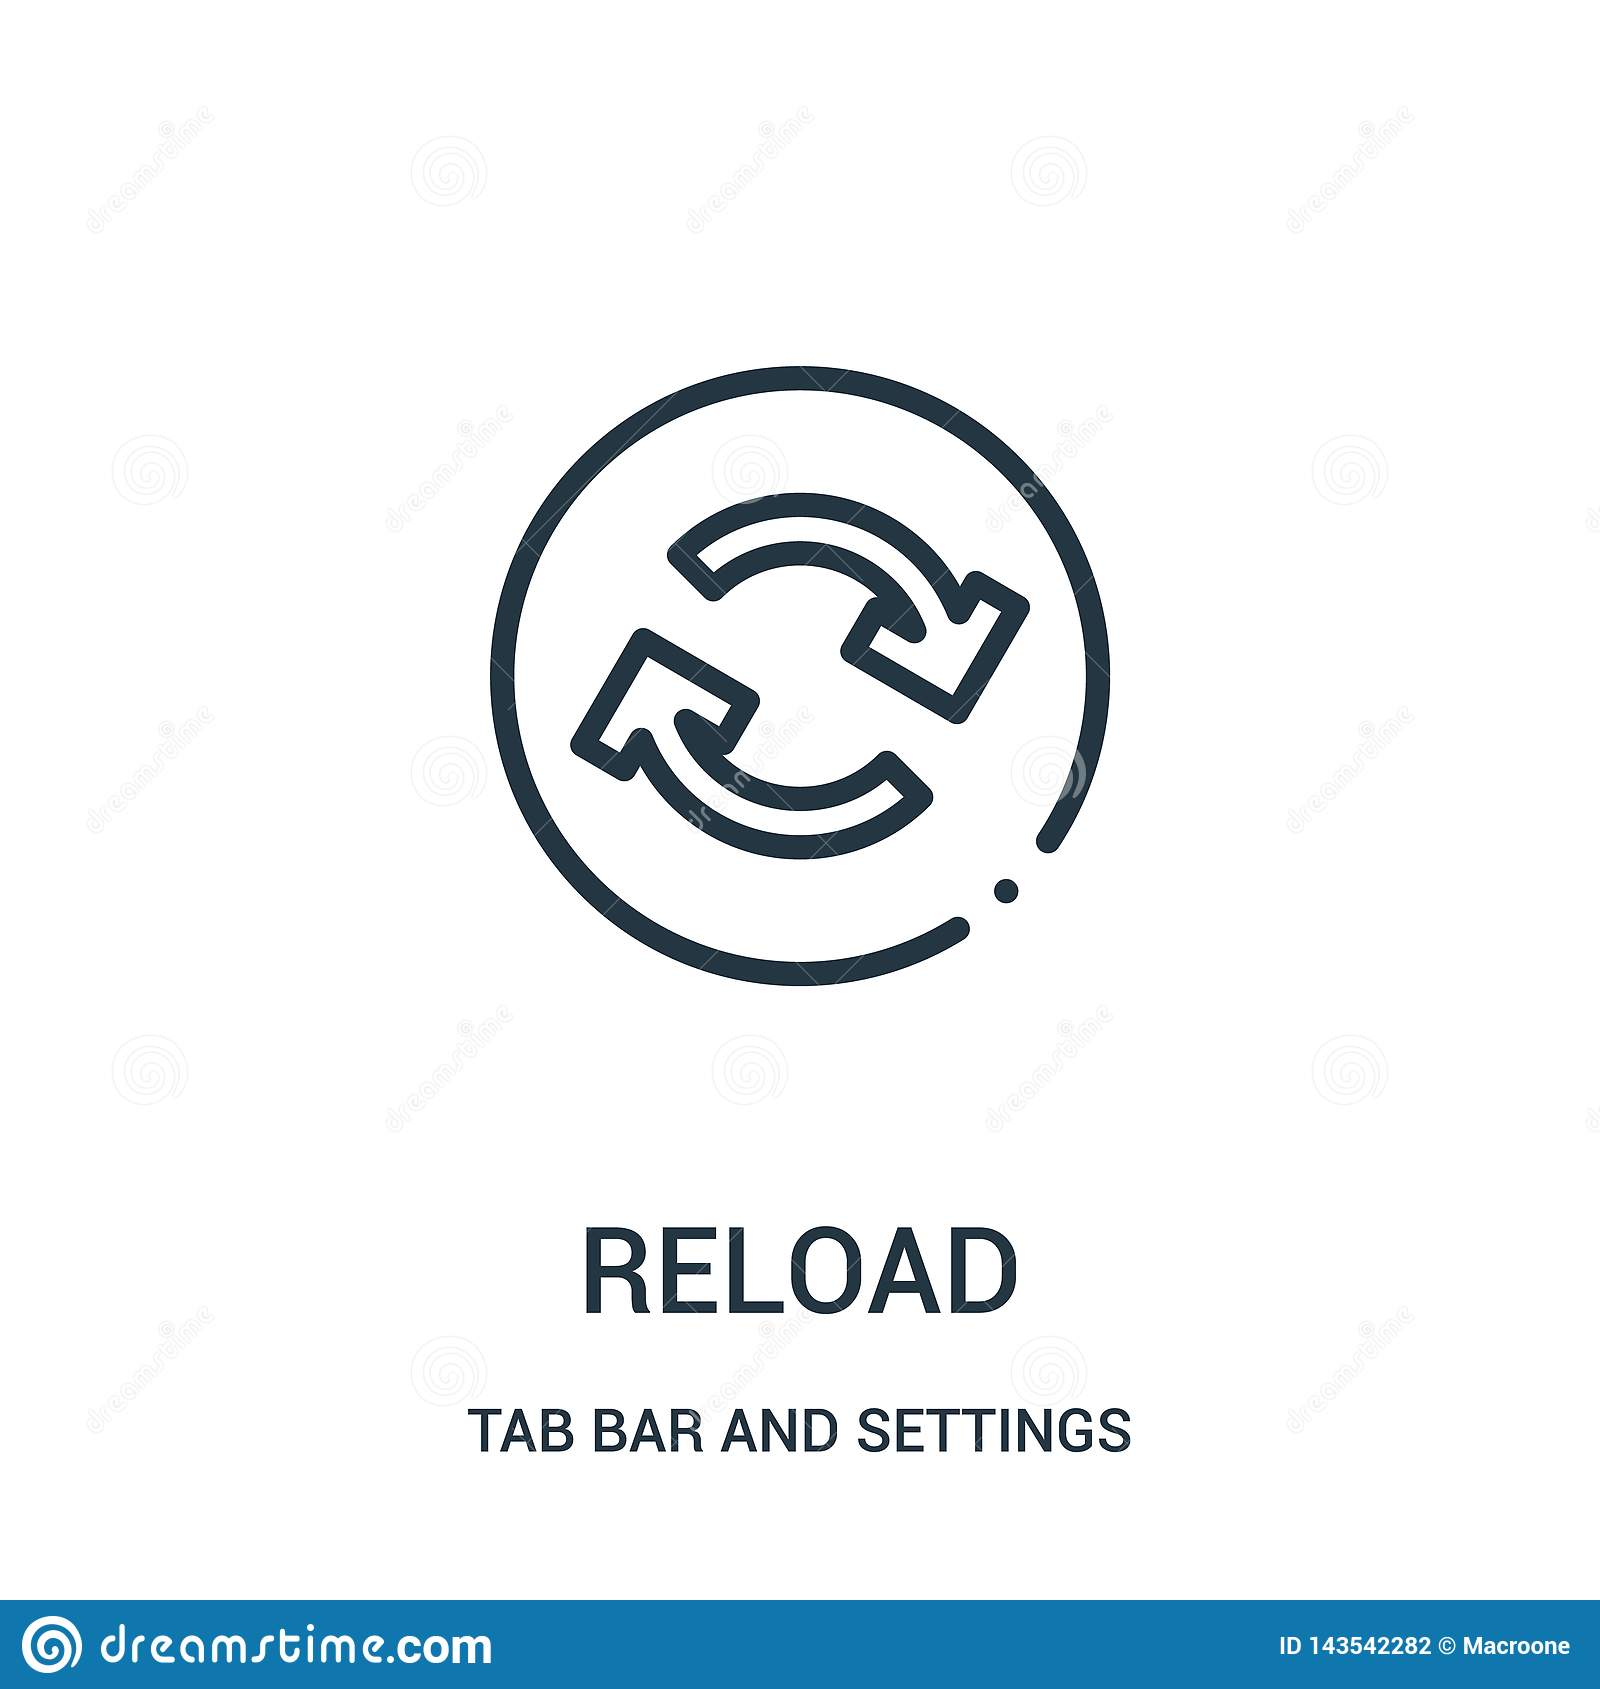 reload icon vector from tab bar and settings collection. Thin line reload outline icon vector illustration